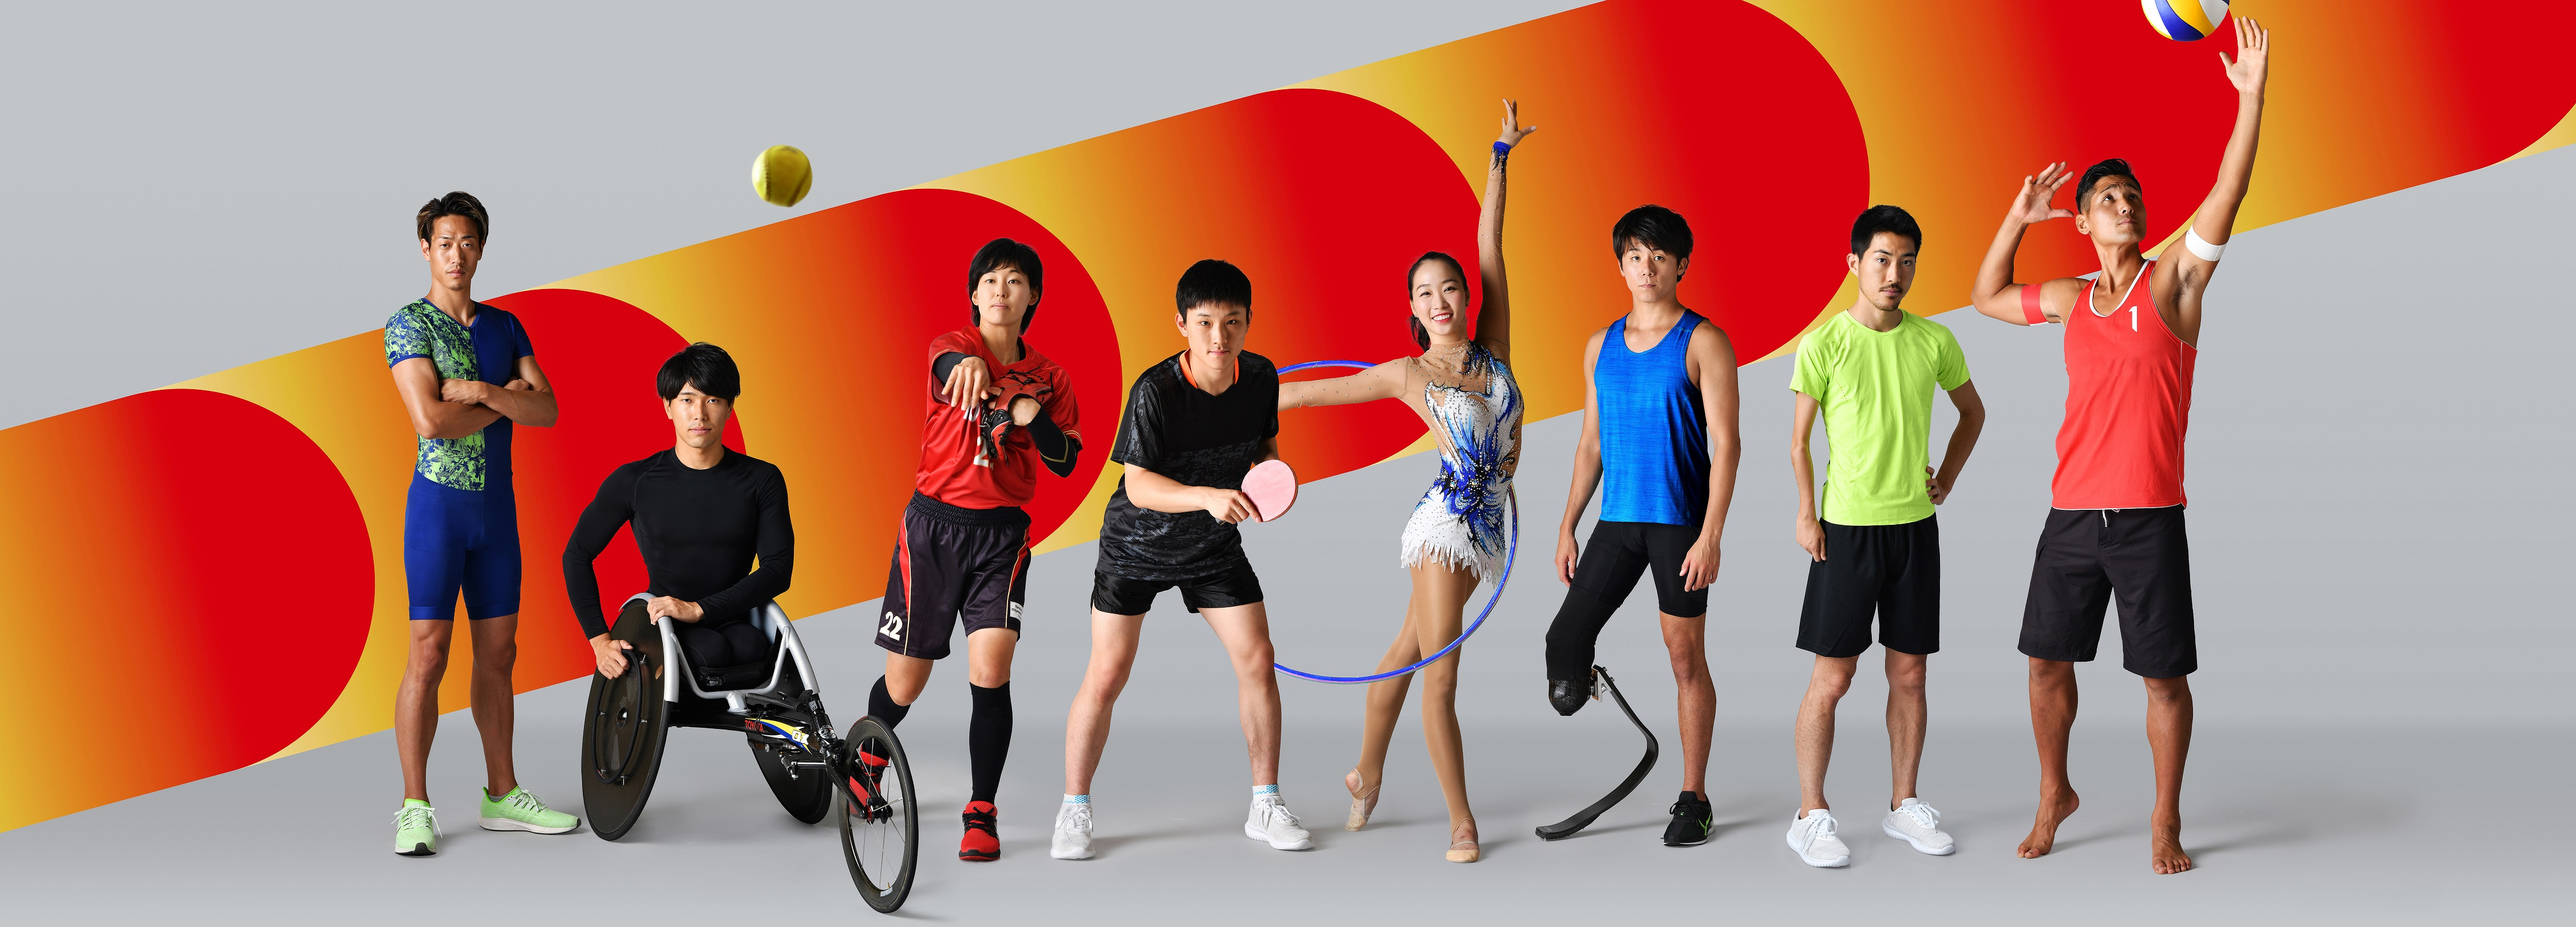 global-team-toyota-athlete-a.jpg